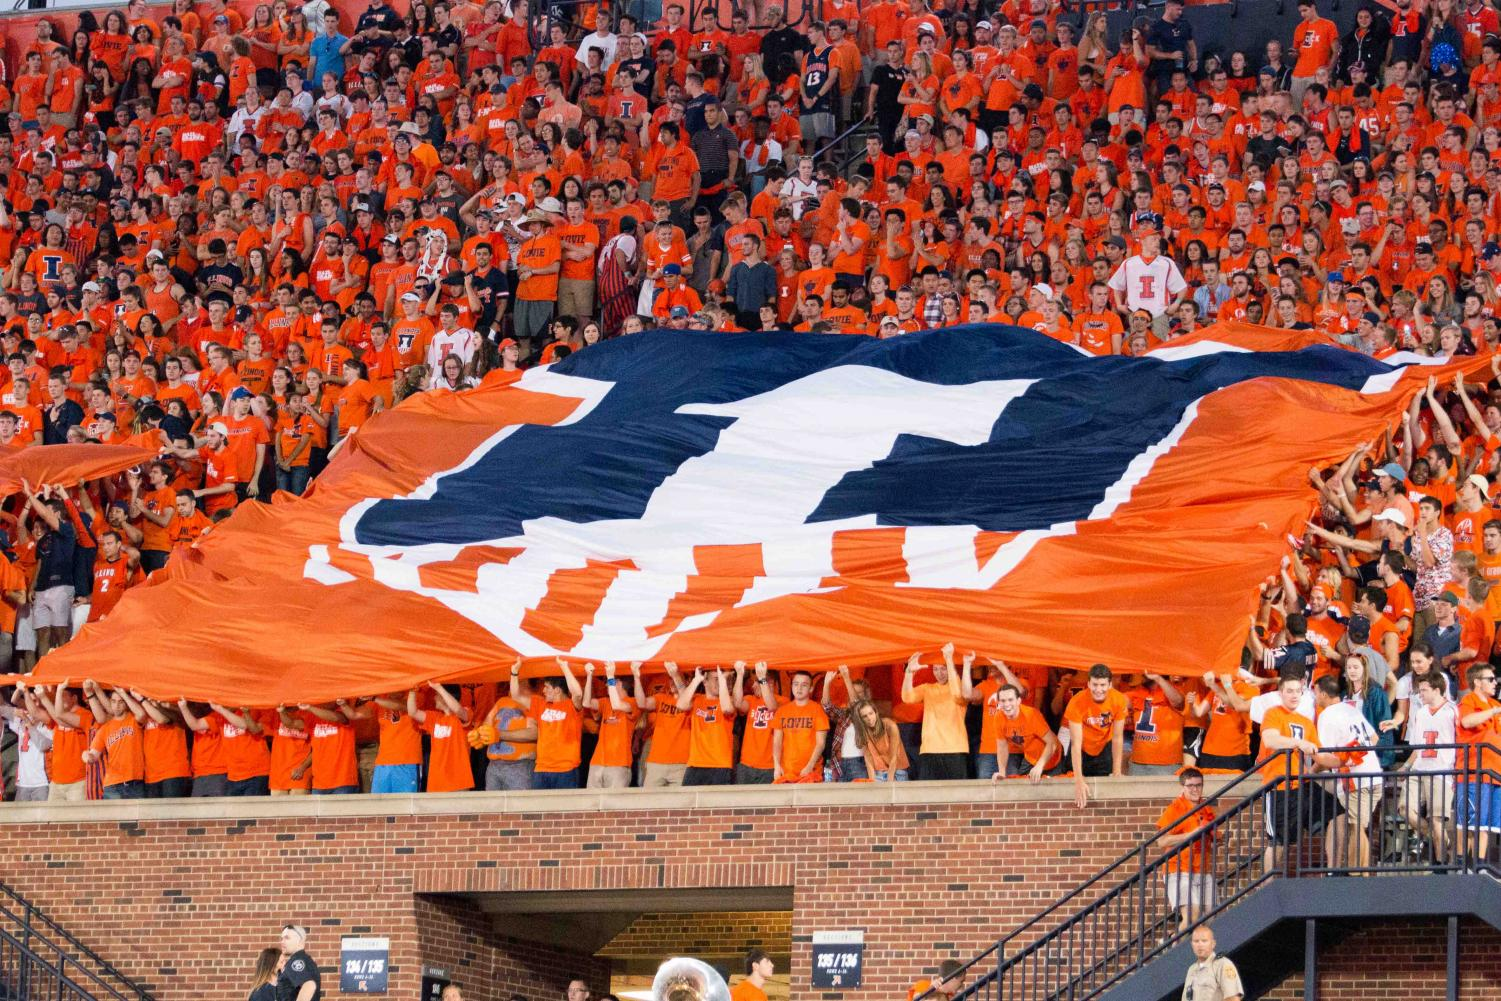 Students in Block I hold up the Illini shield flag during the game against North Carolina at Memorial Stadium on Sept. 10, 2016. Allie Hartlein, Block I communication chair, said students will perform an alumni-designed card stunt at the Homecoming football game on Saturday.